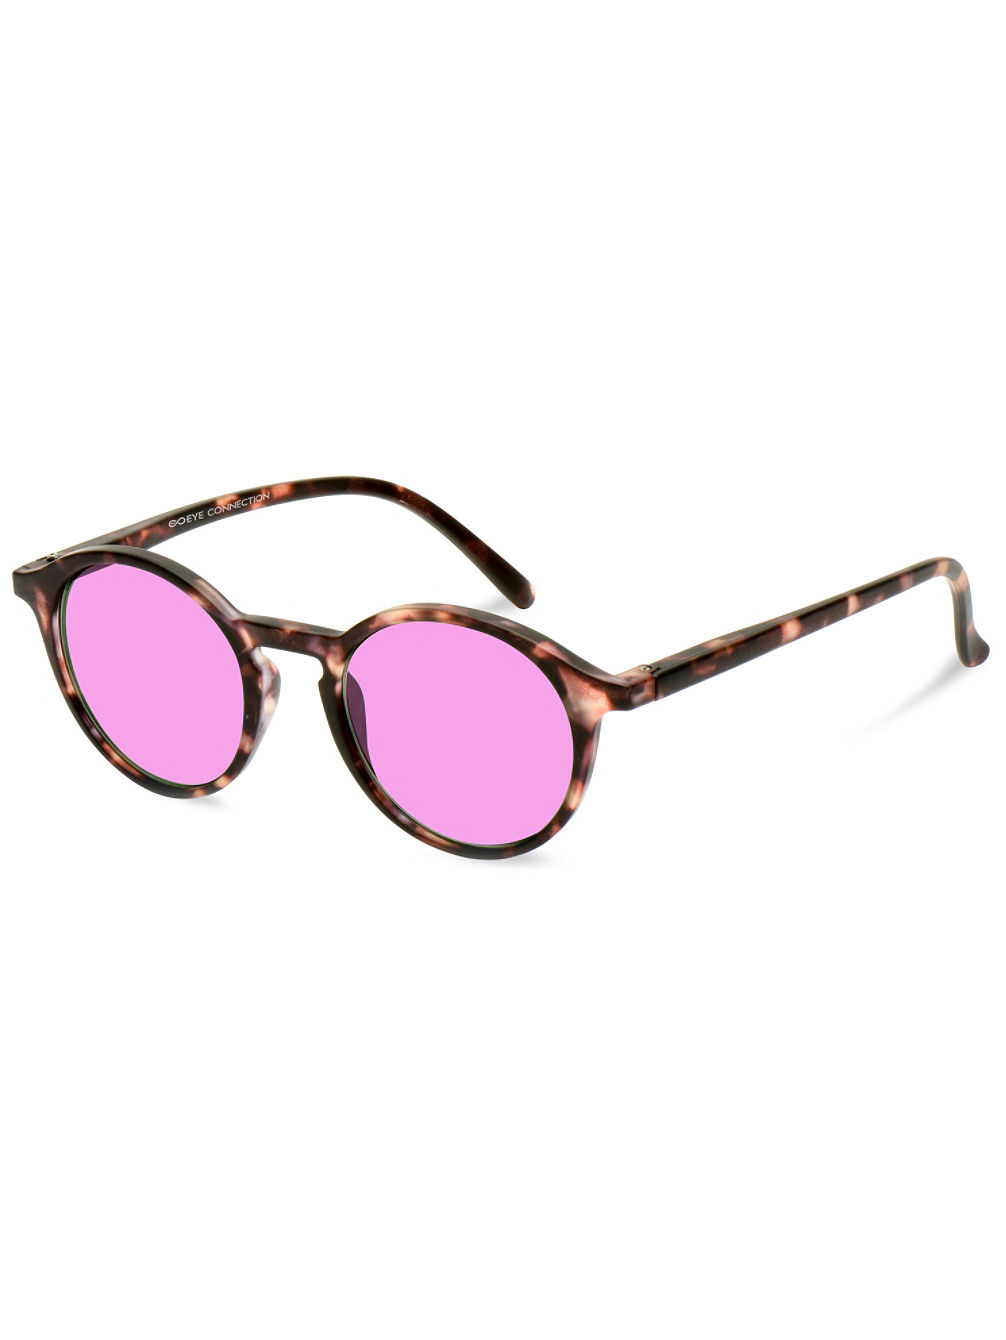 William Matt Tortoise Pink Sonnenbrille